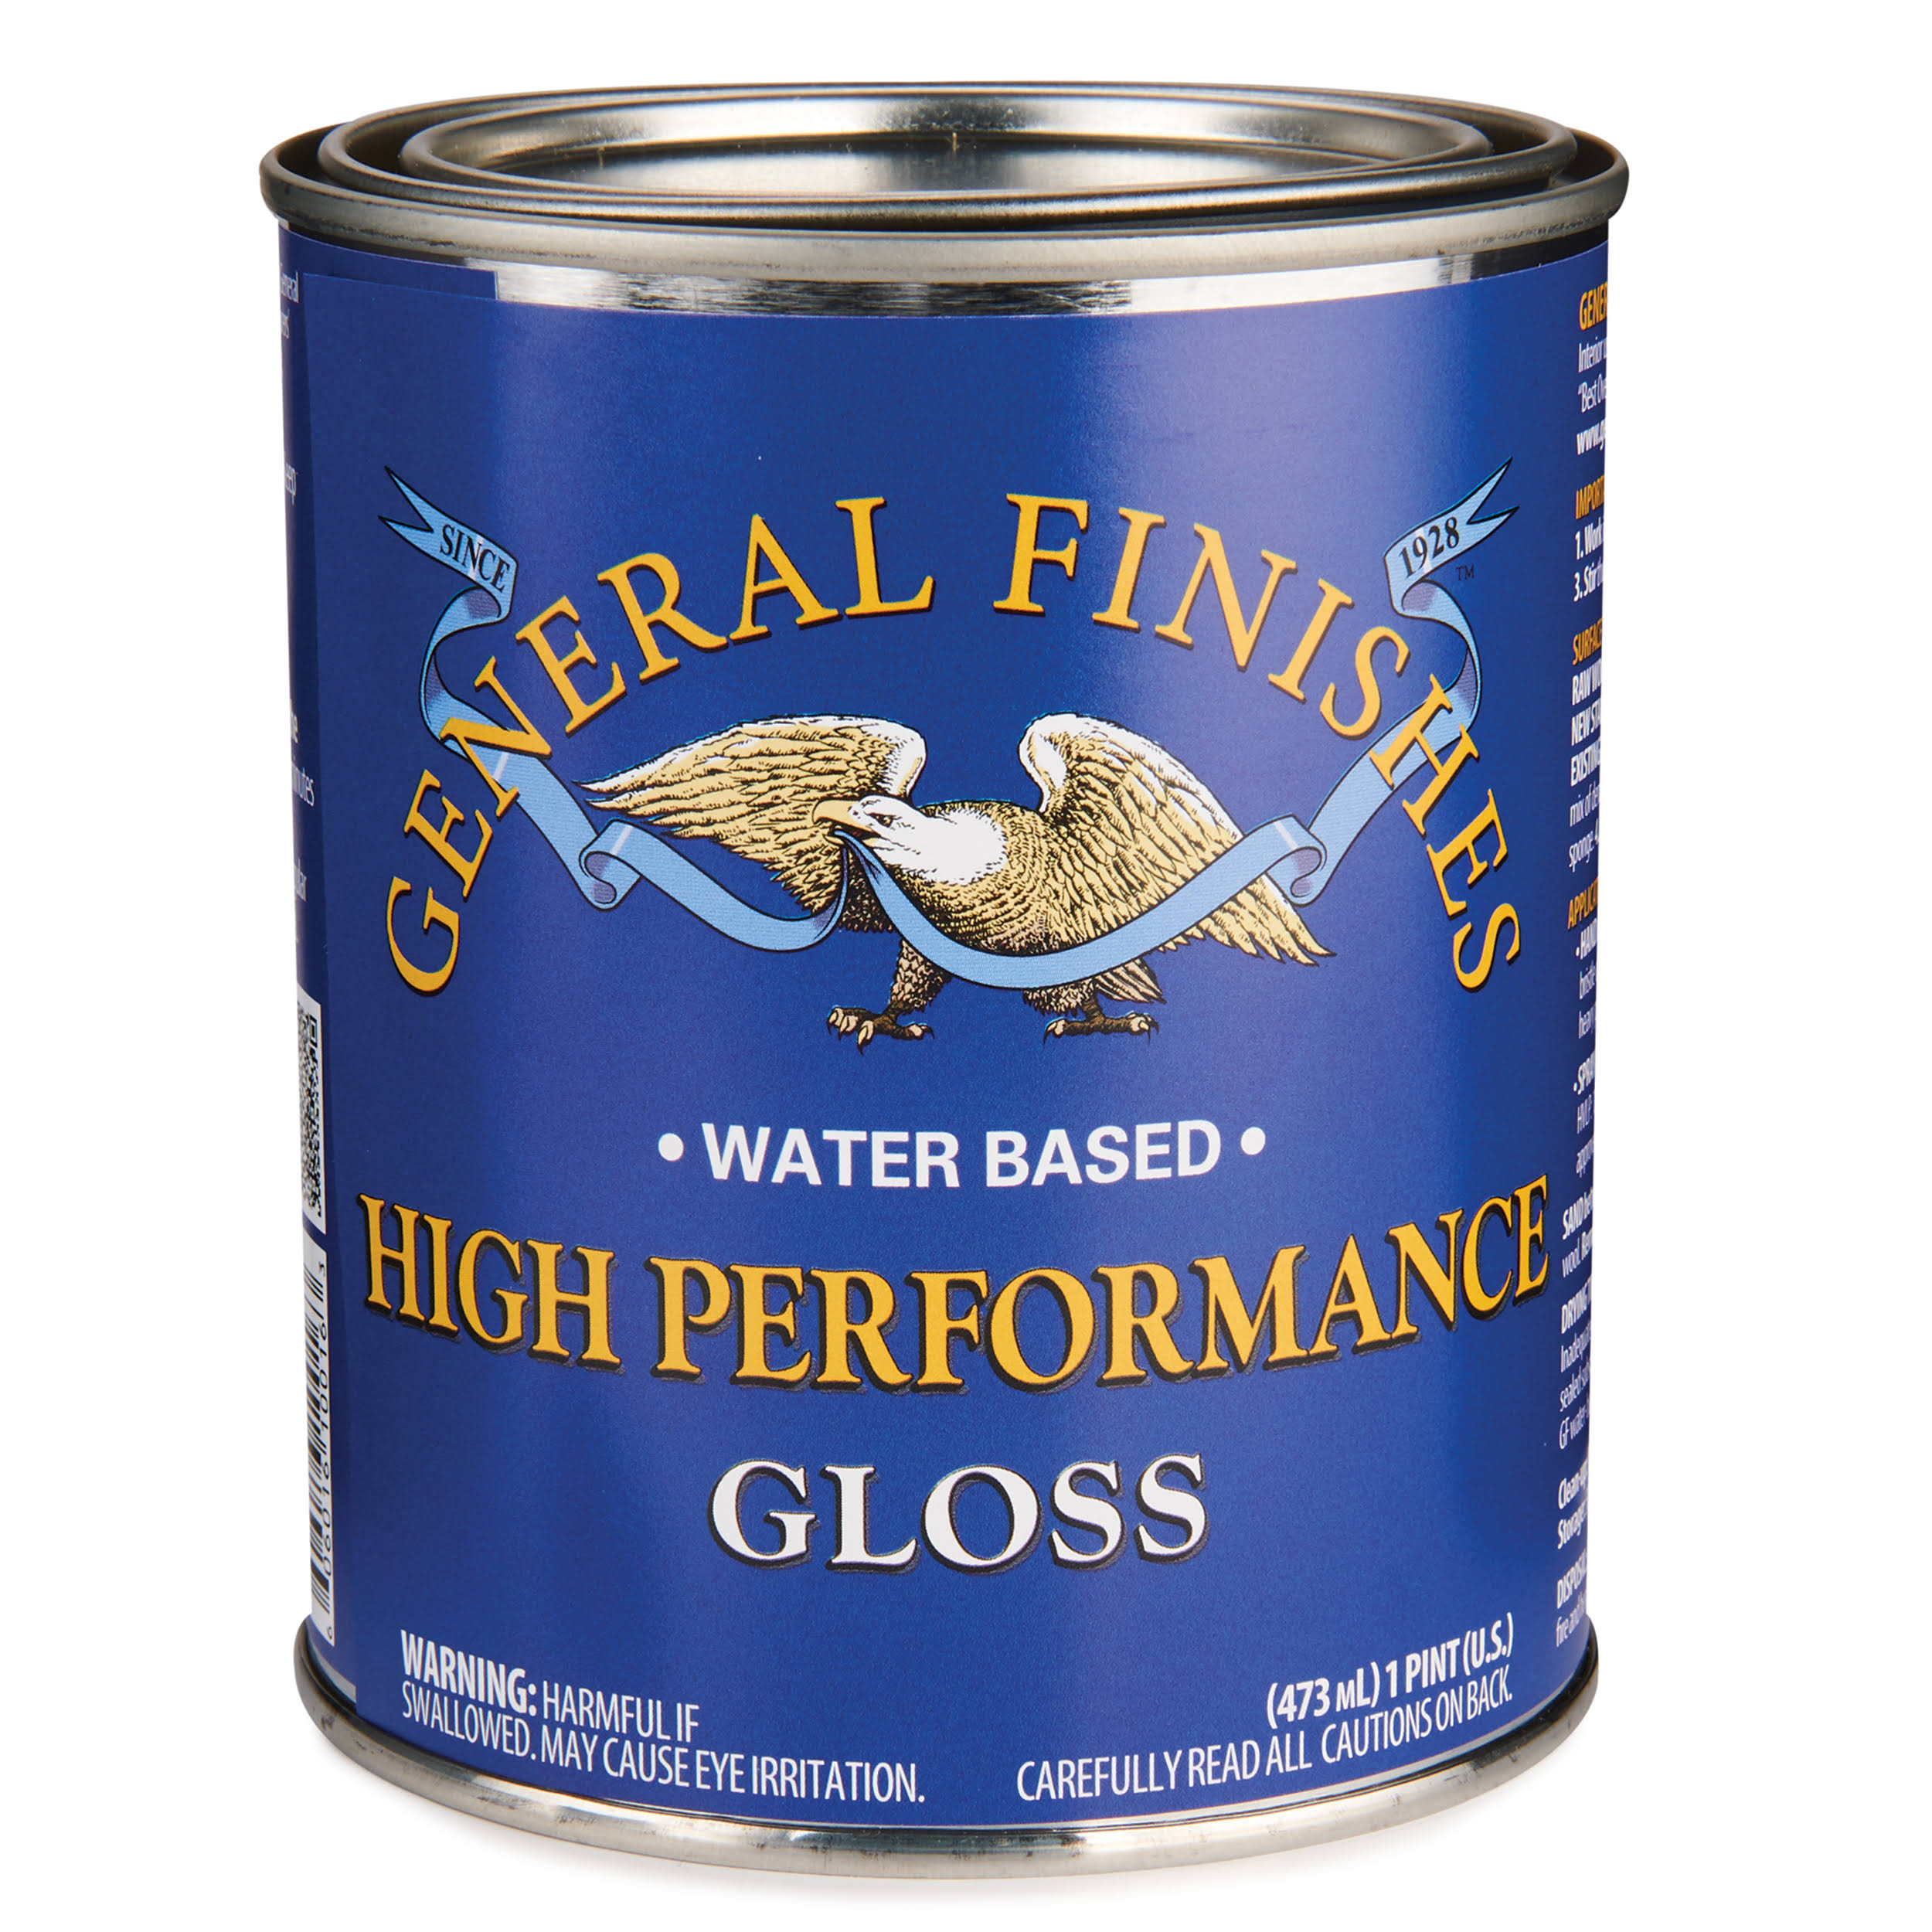 General Finishes High Performance Water Based Top Coat Gloss - 473ml